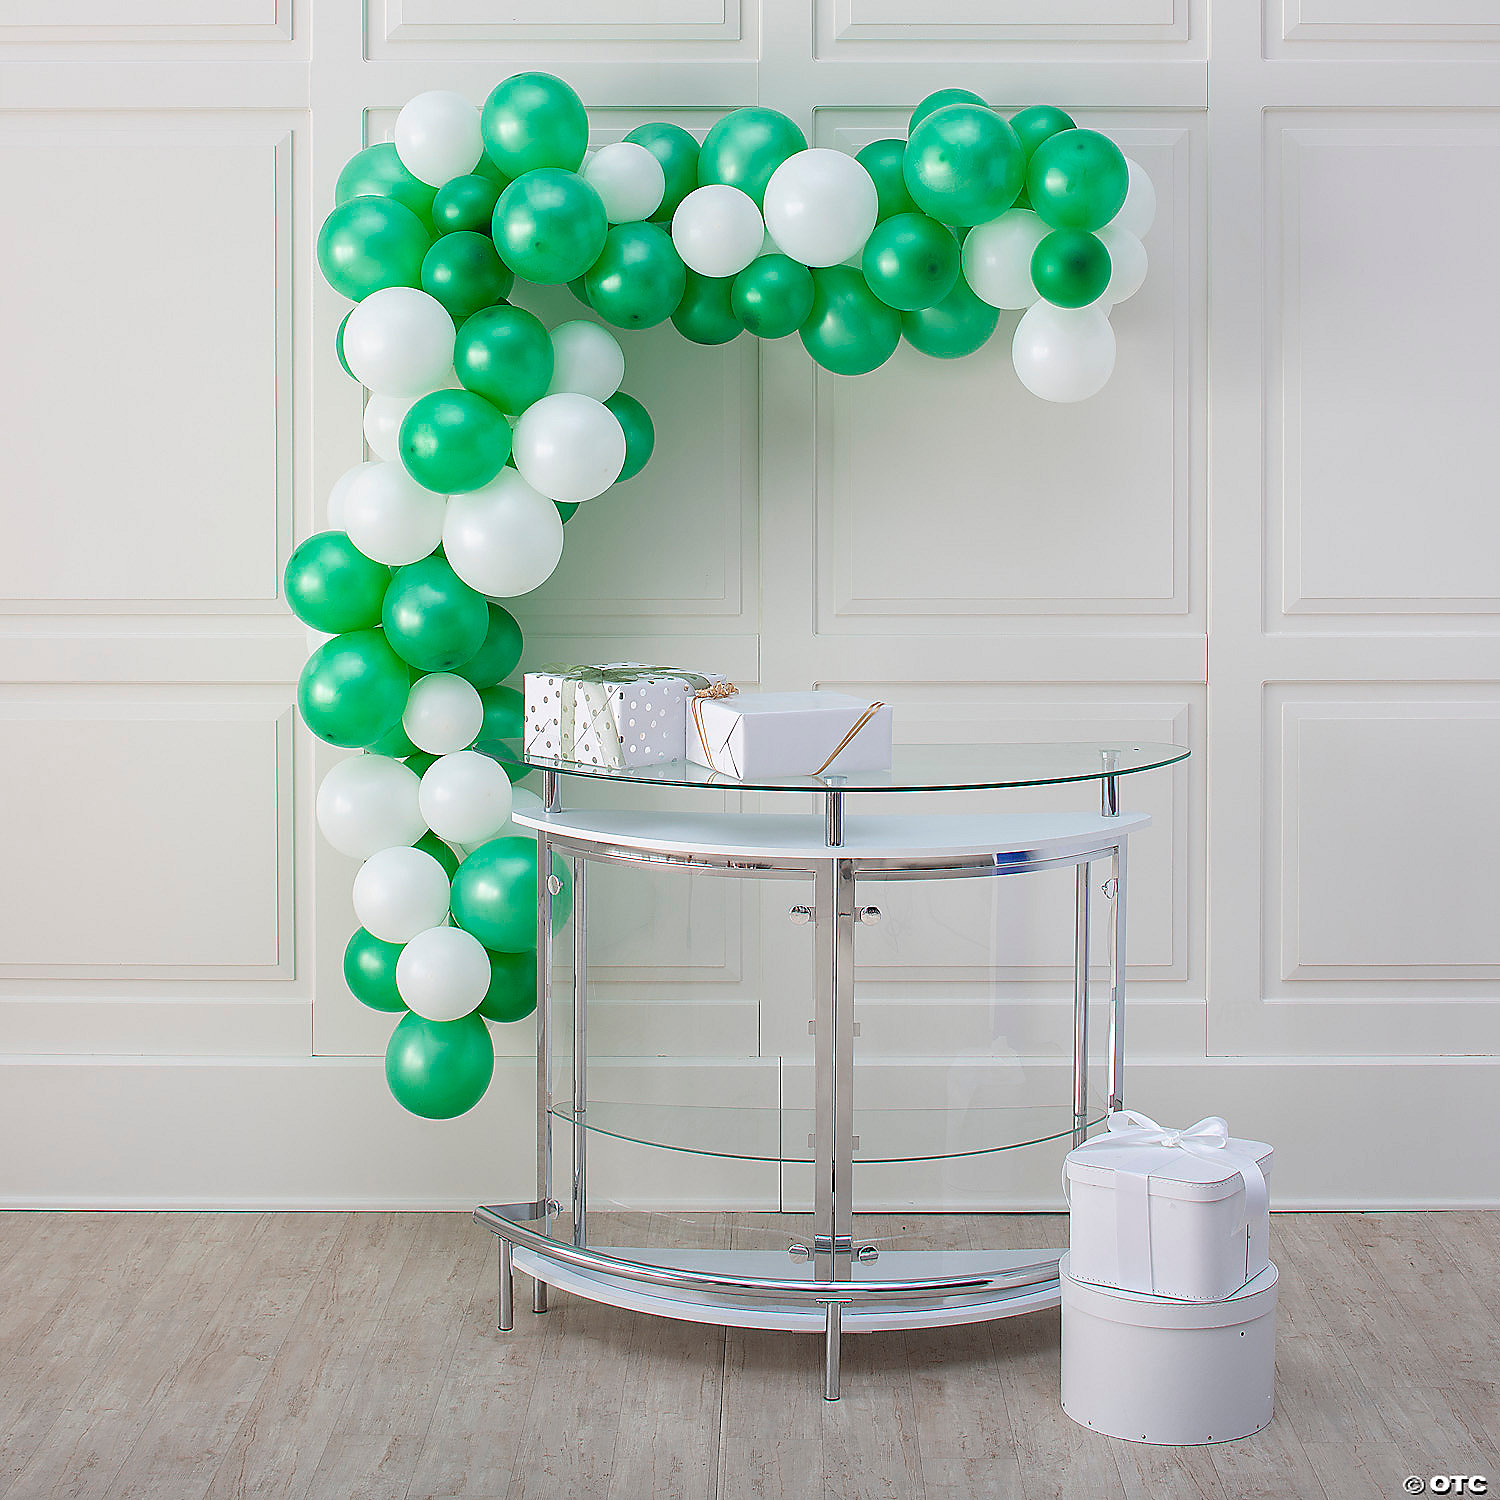 25 Ft Green White Balloon Garland Kit With Air Pump